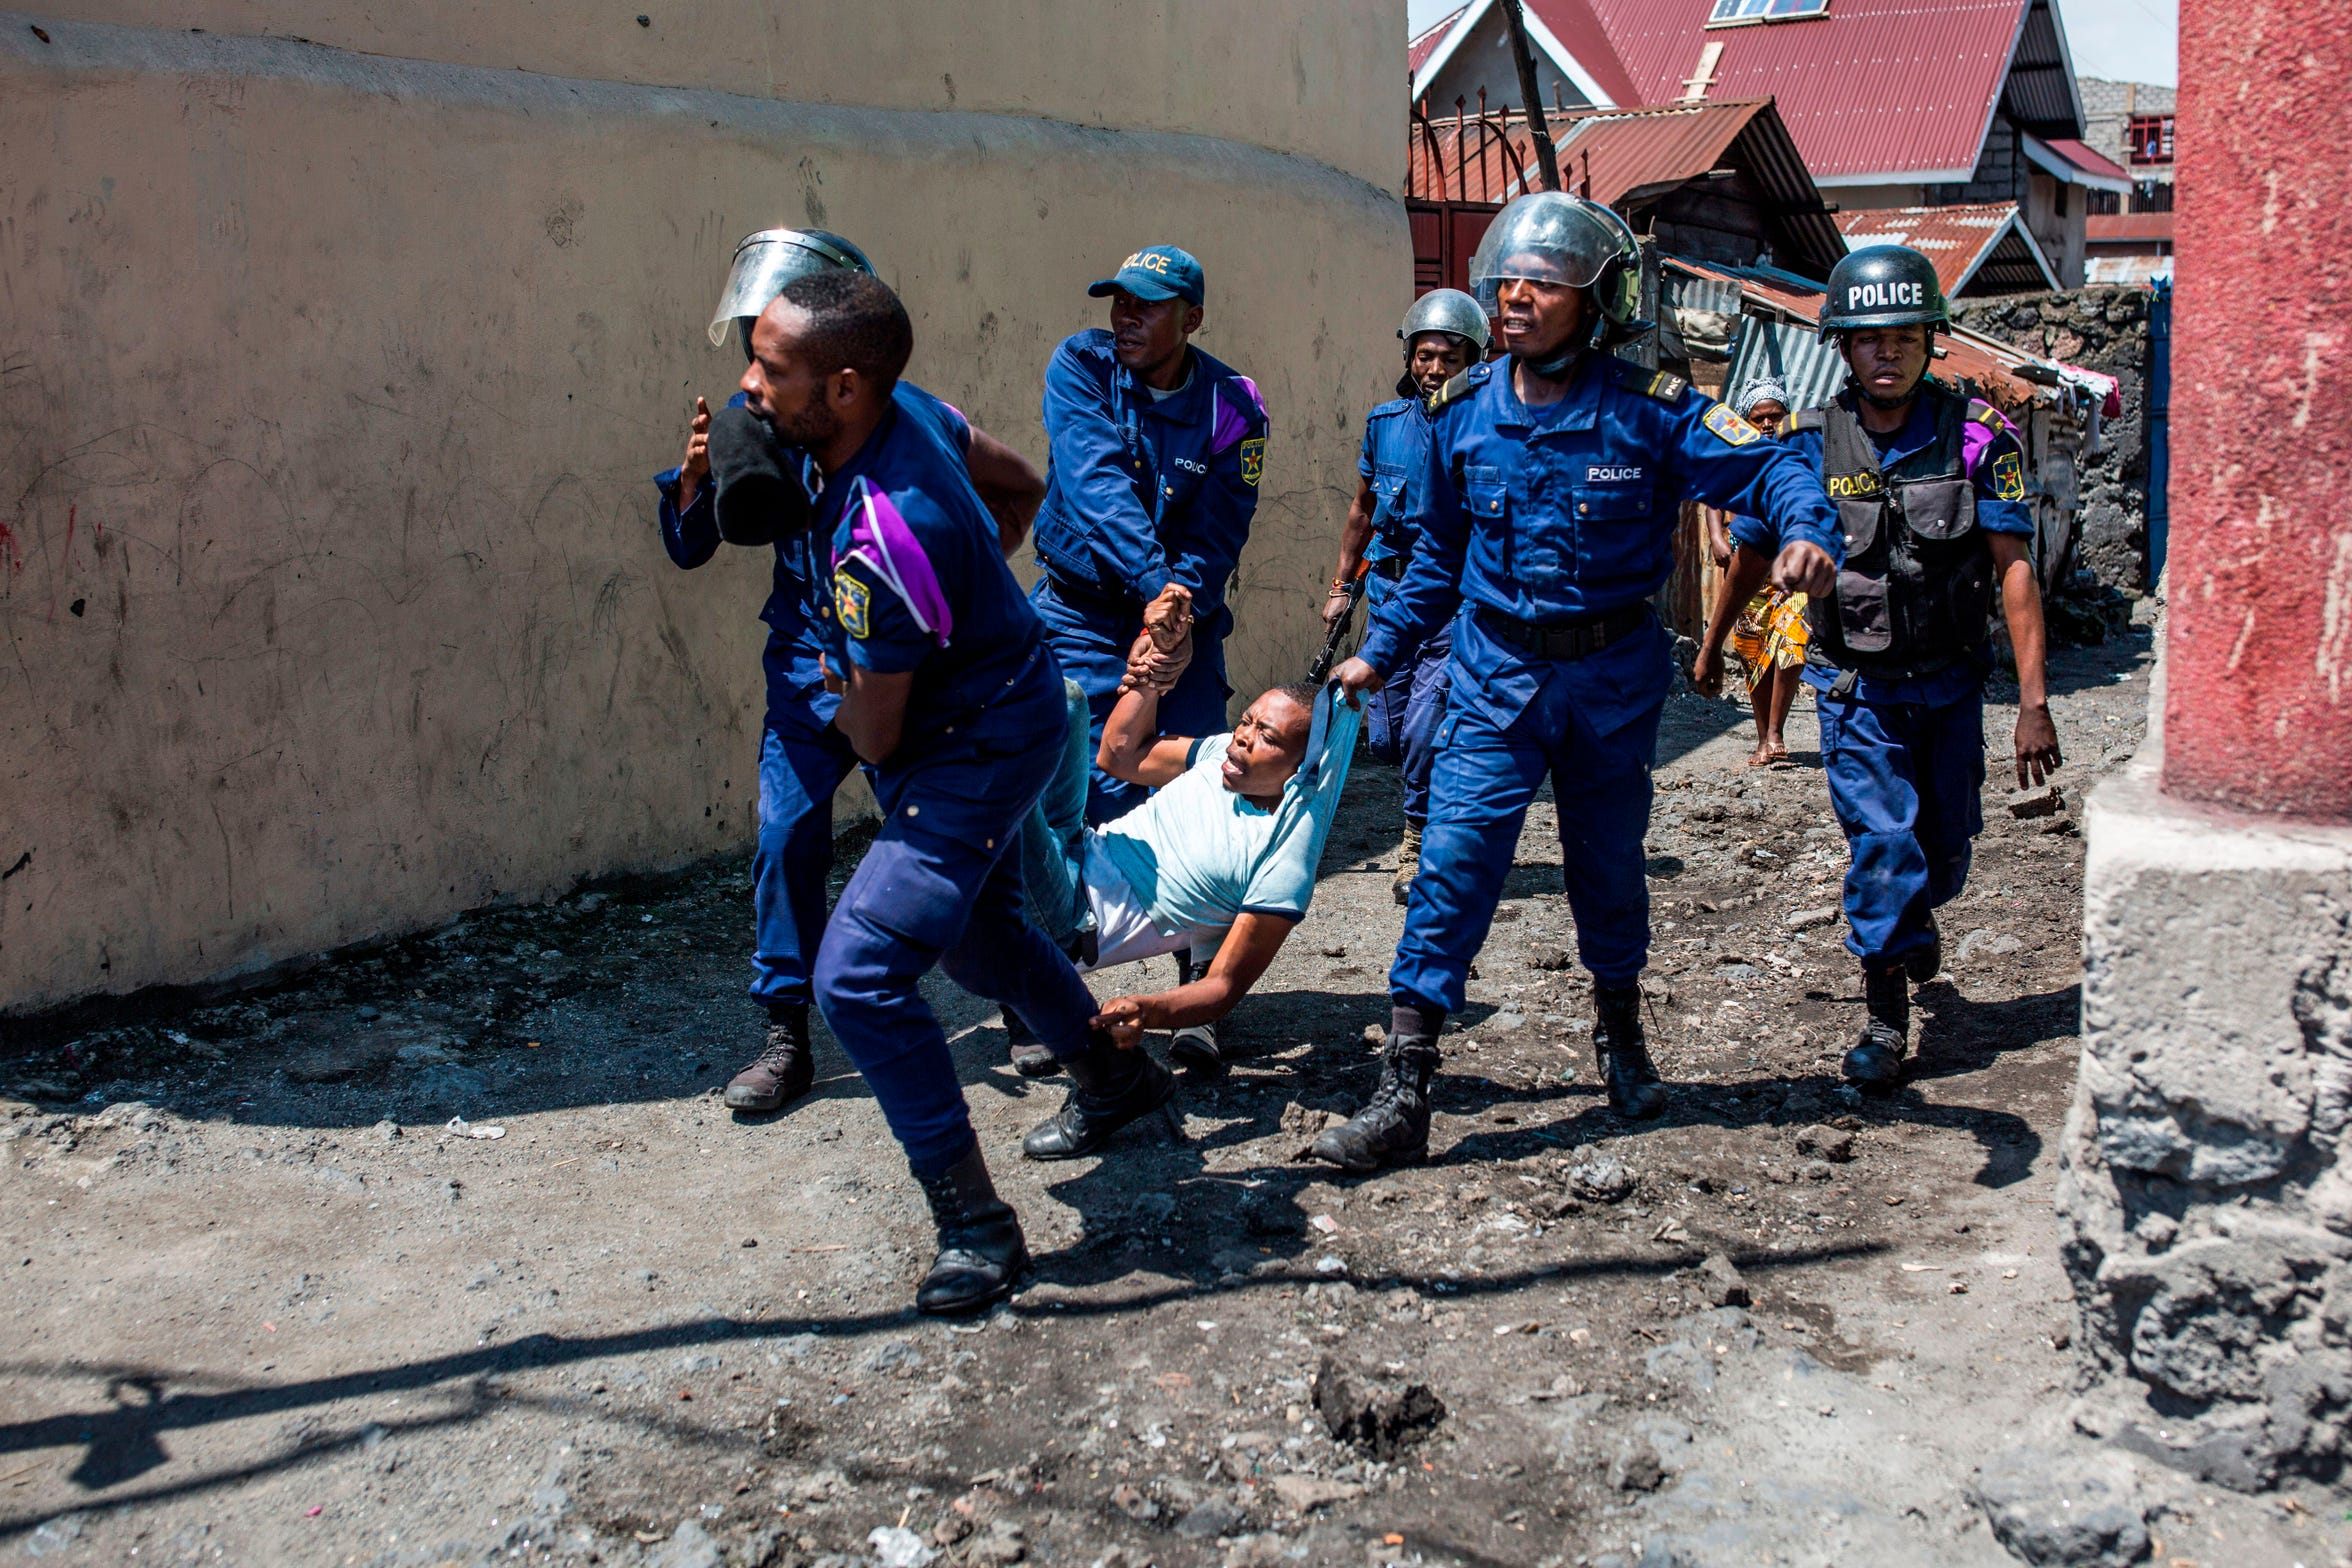 Congolese National Police arrest a man at Majengo neighborhood in Goma, on Dec. 27, 2018.